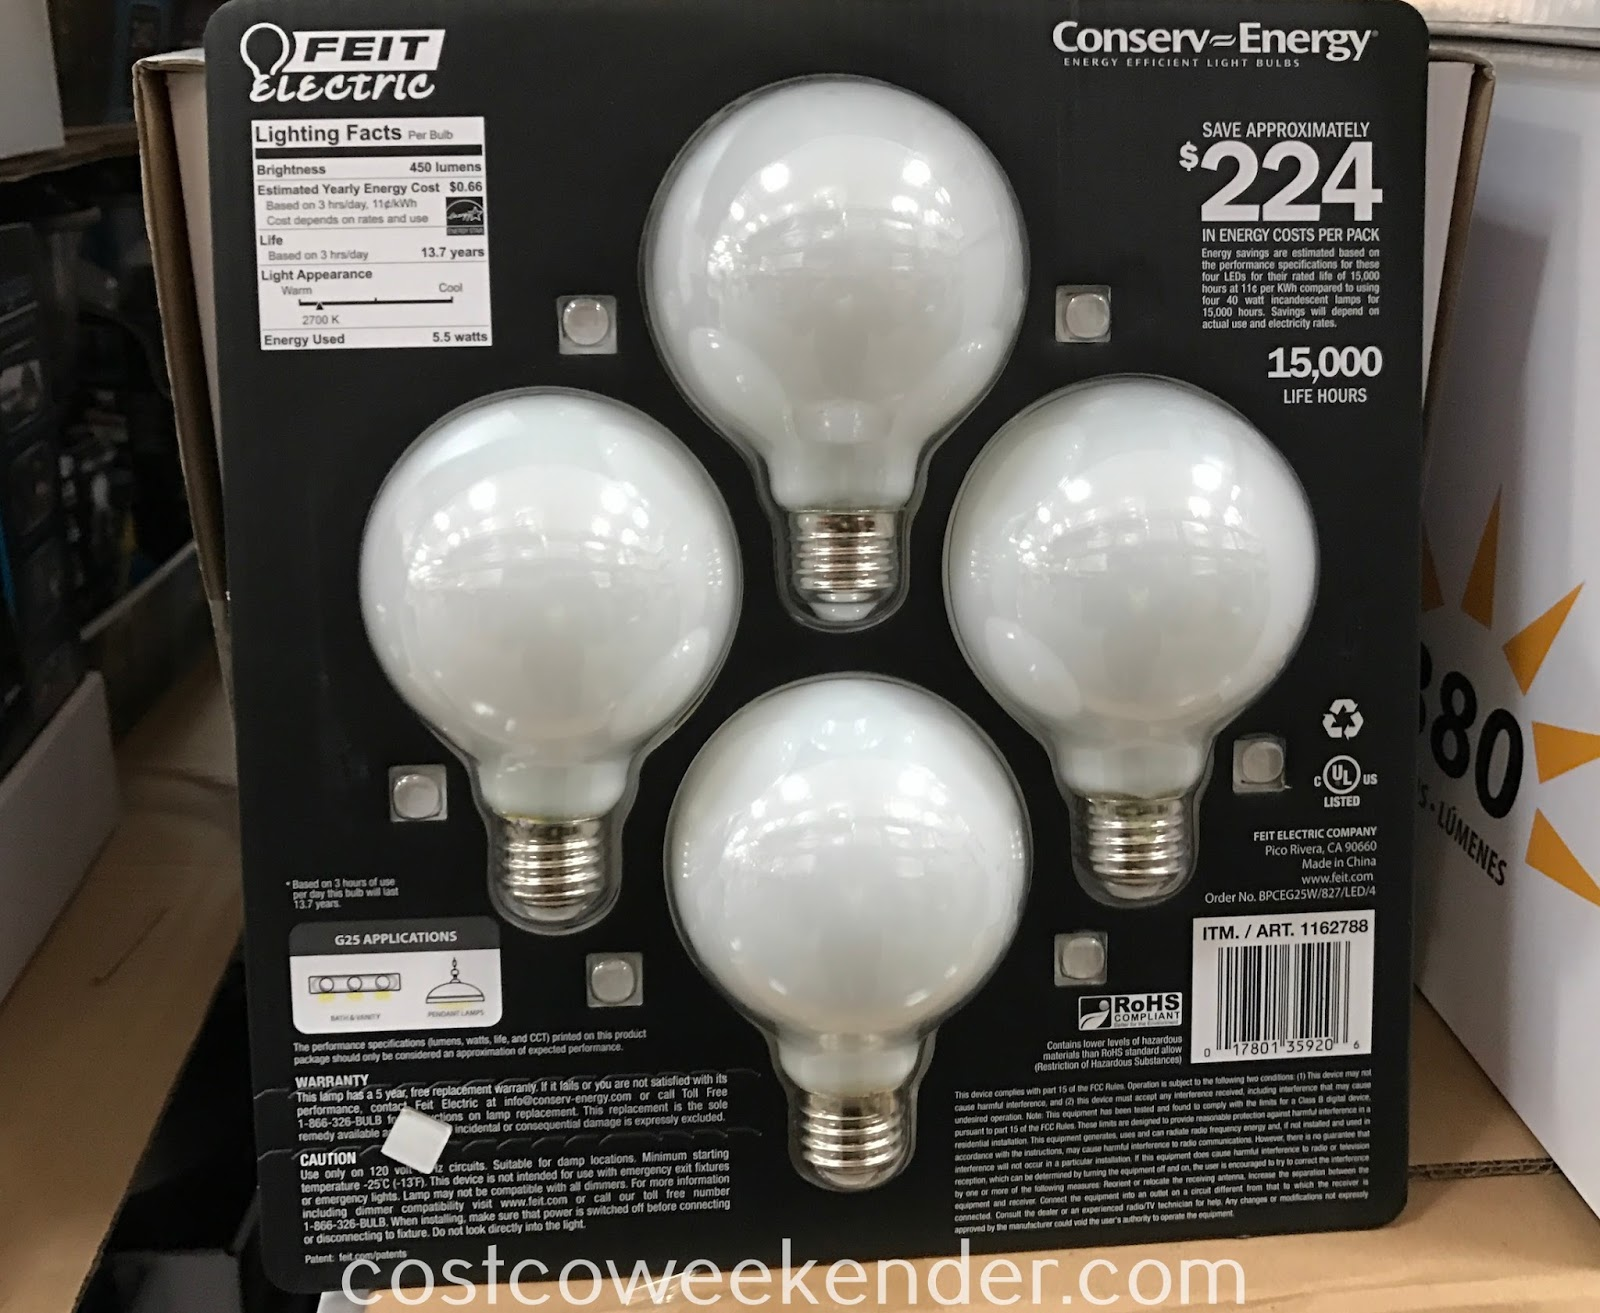 Costco 1162788 - Feit Electric Globe Frosted LED Bulbs: practical and will save you money in energy costs